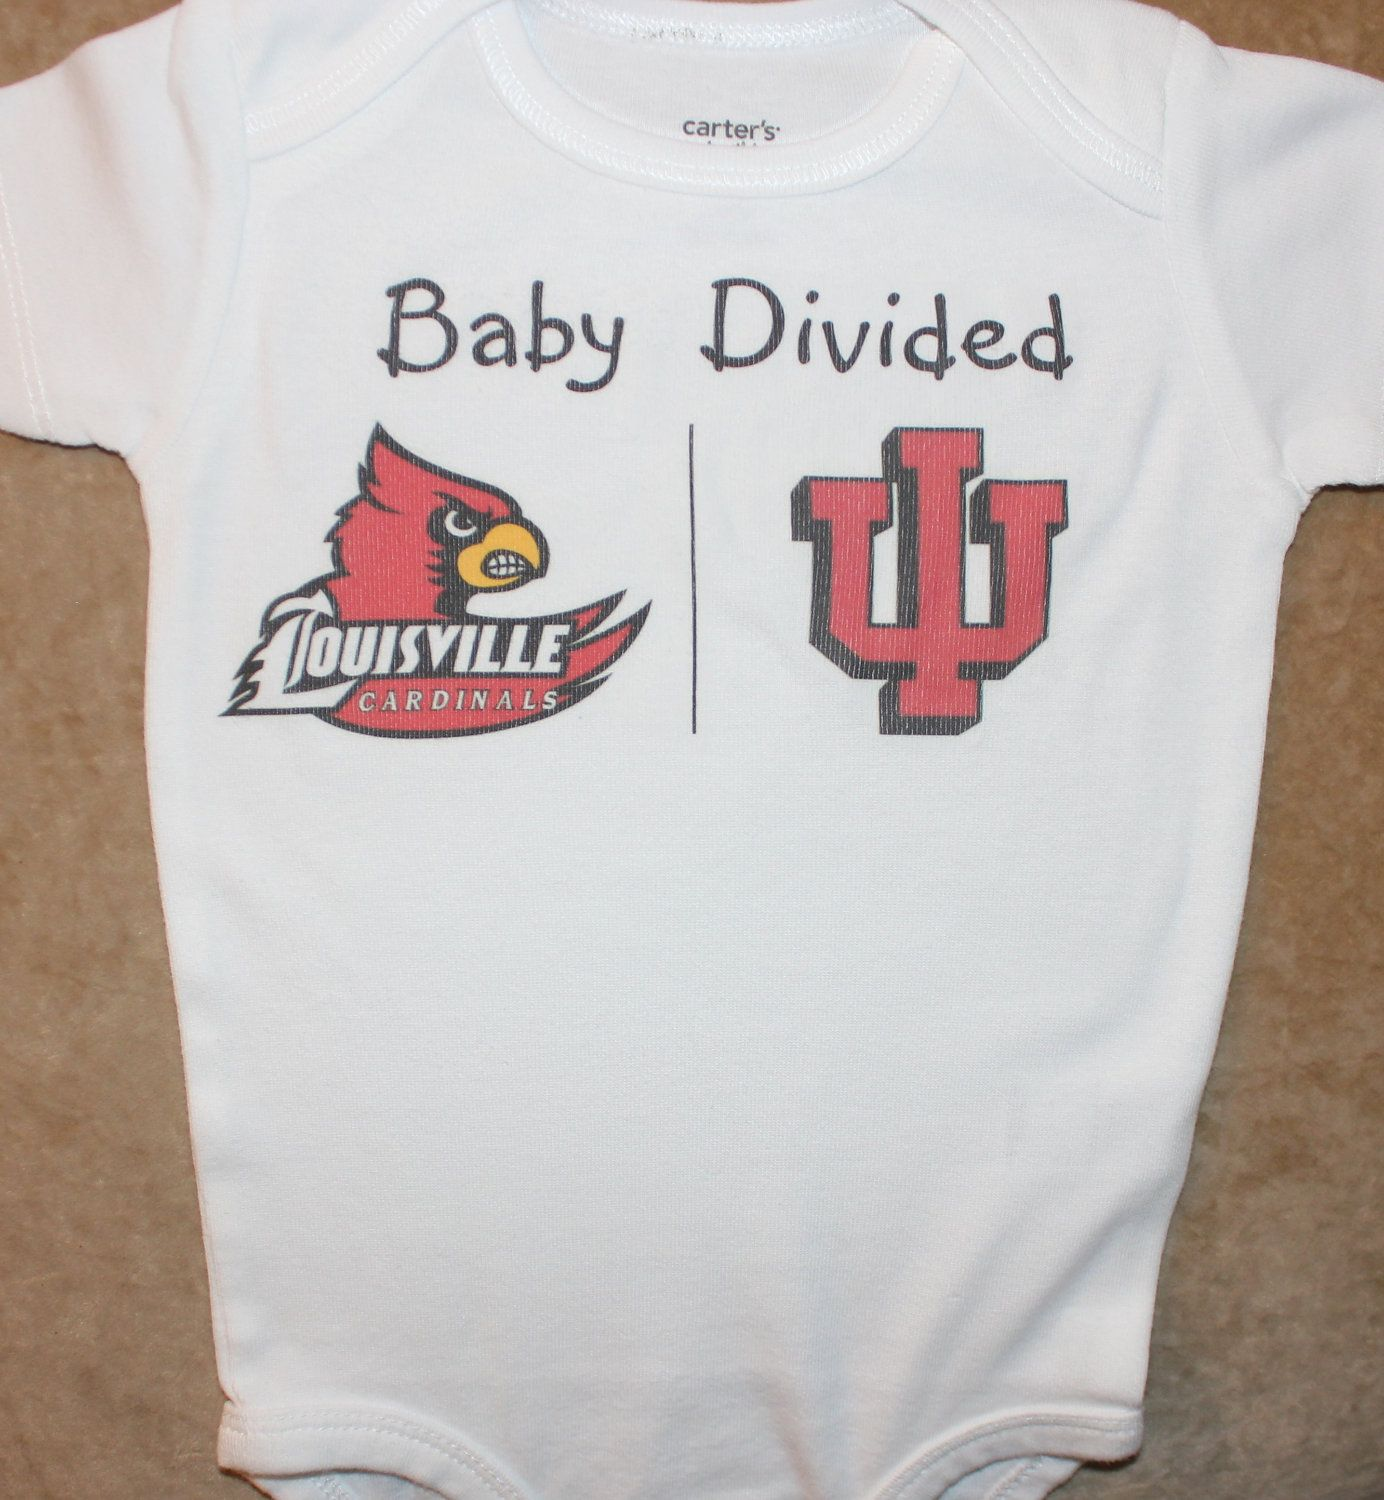 I will need this in IU Purdue someday Baby Divided onesie or